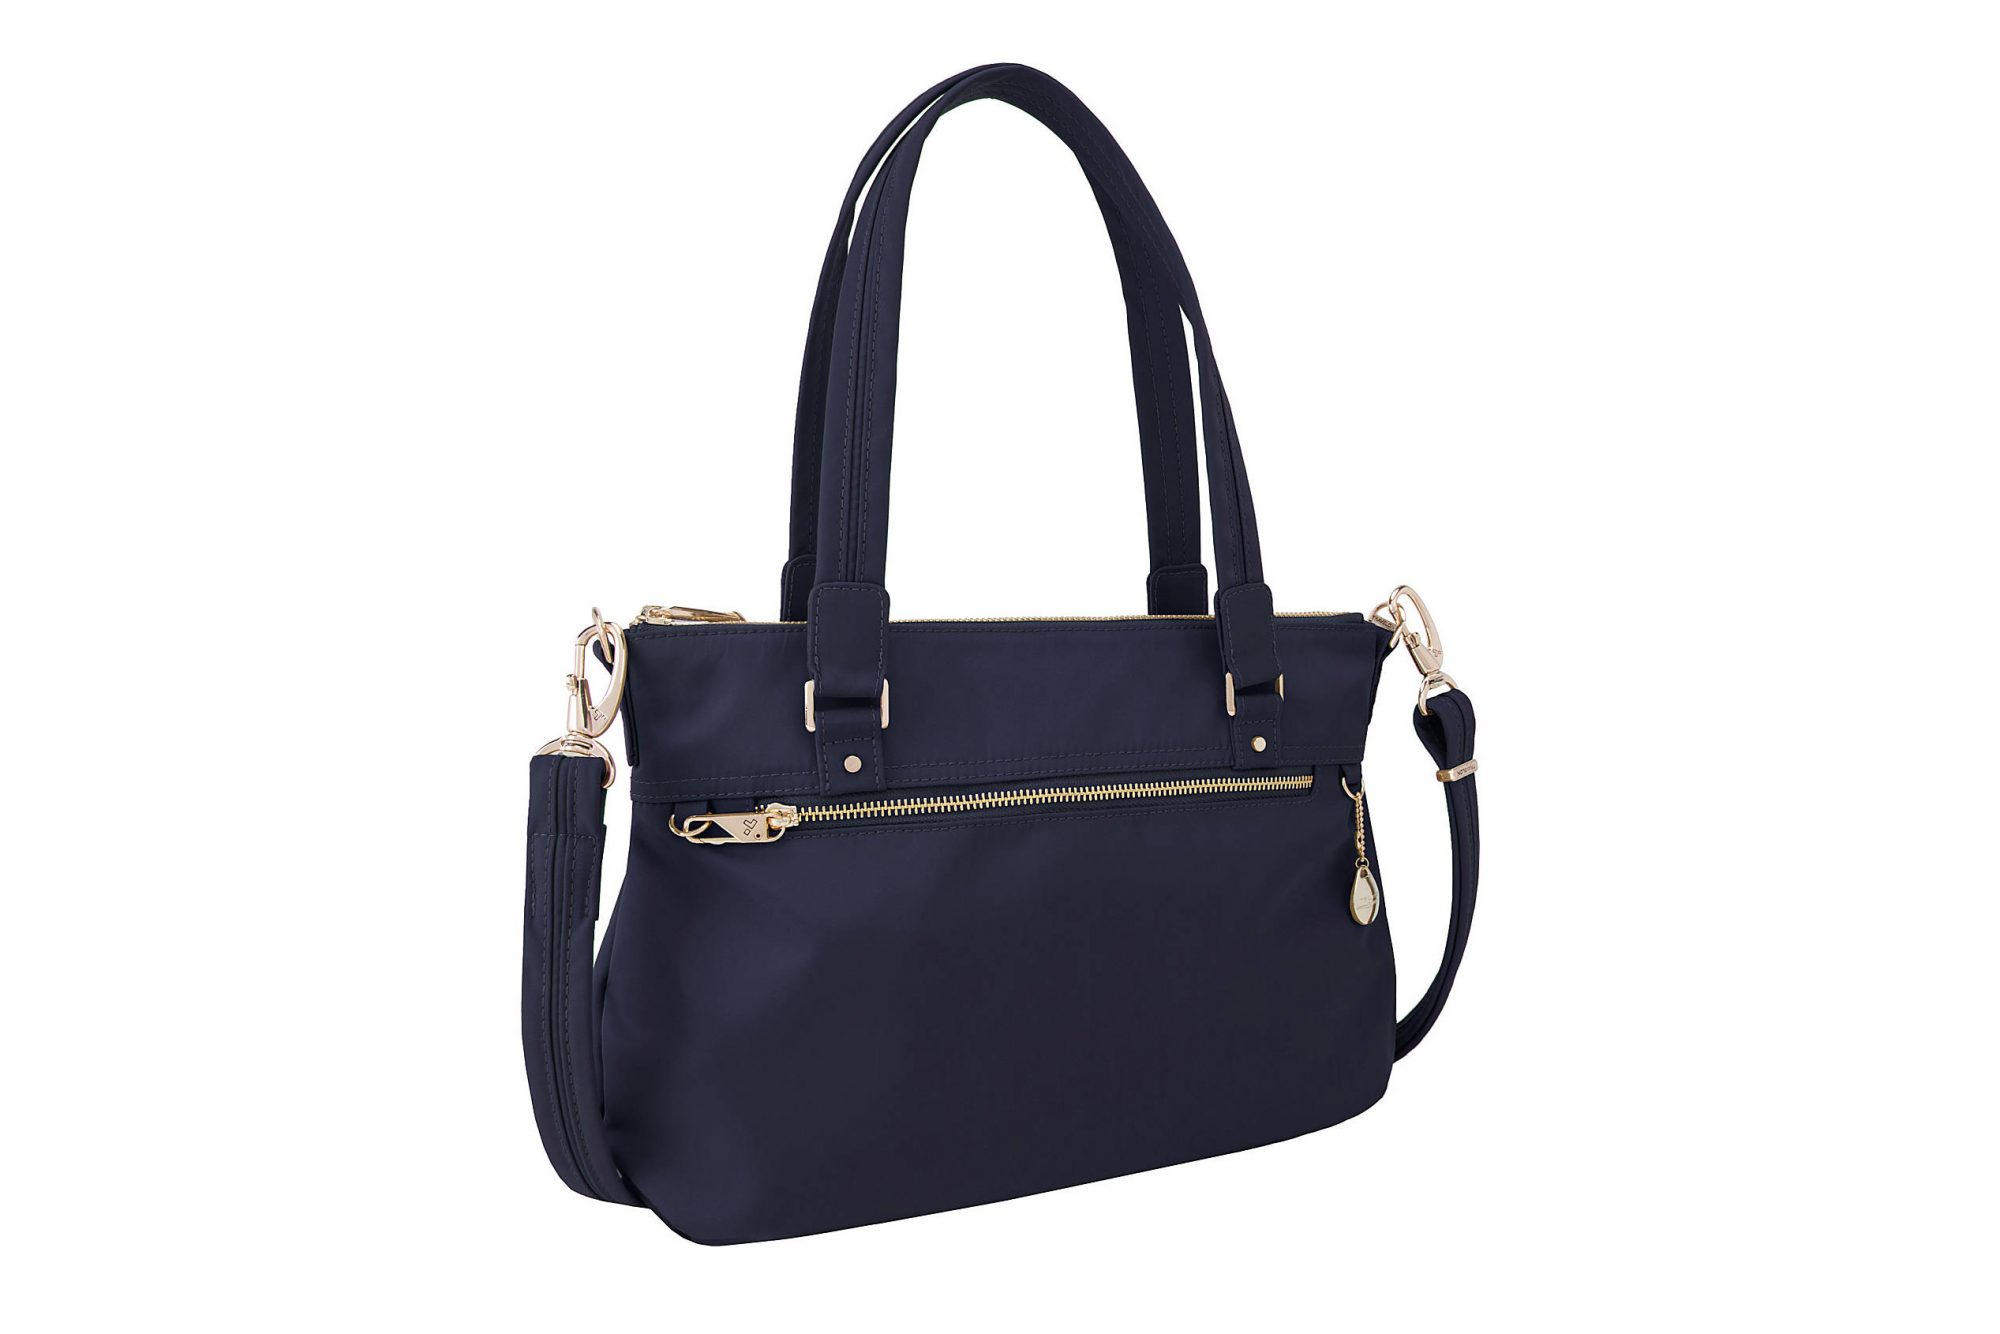 Travelon Anti-Theft Tailored Satchel